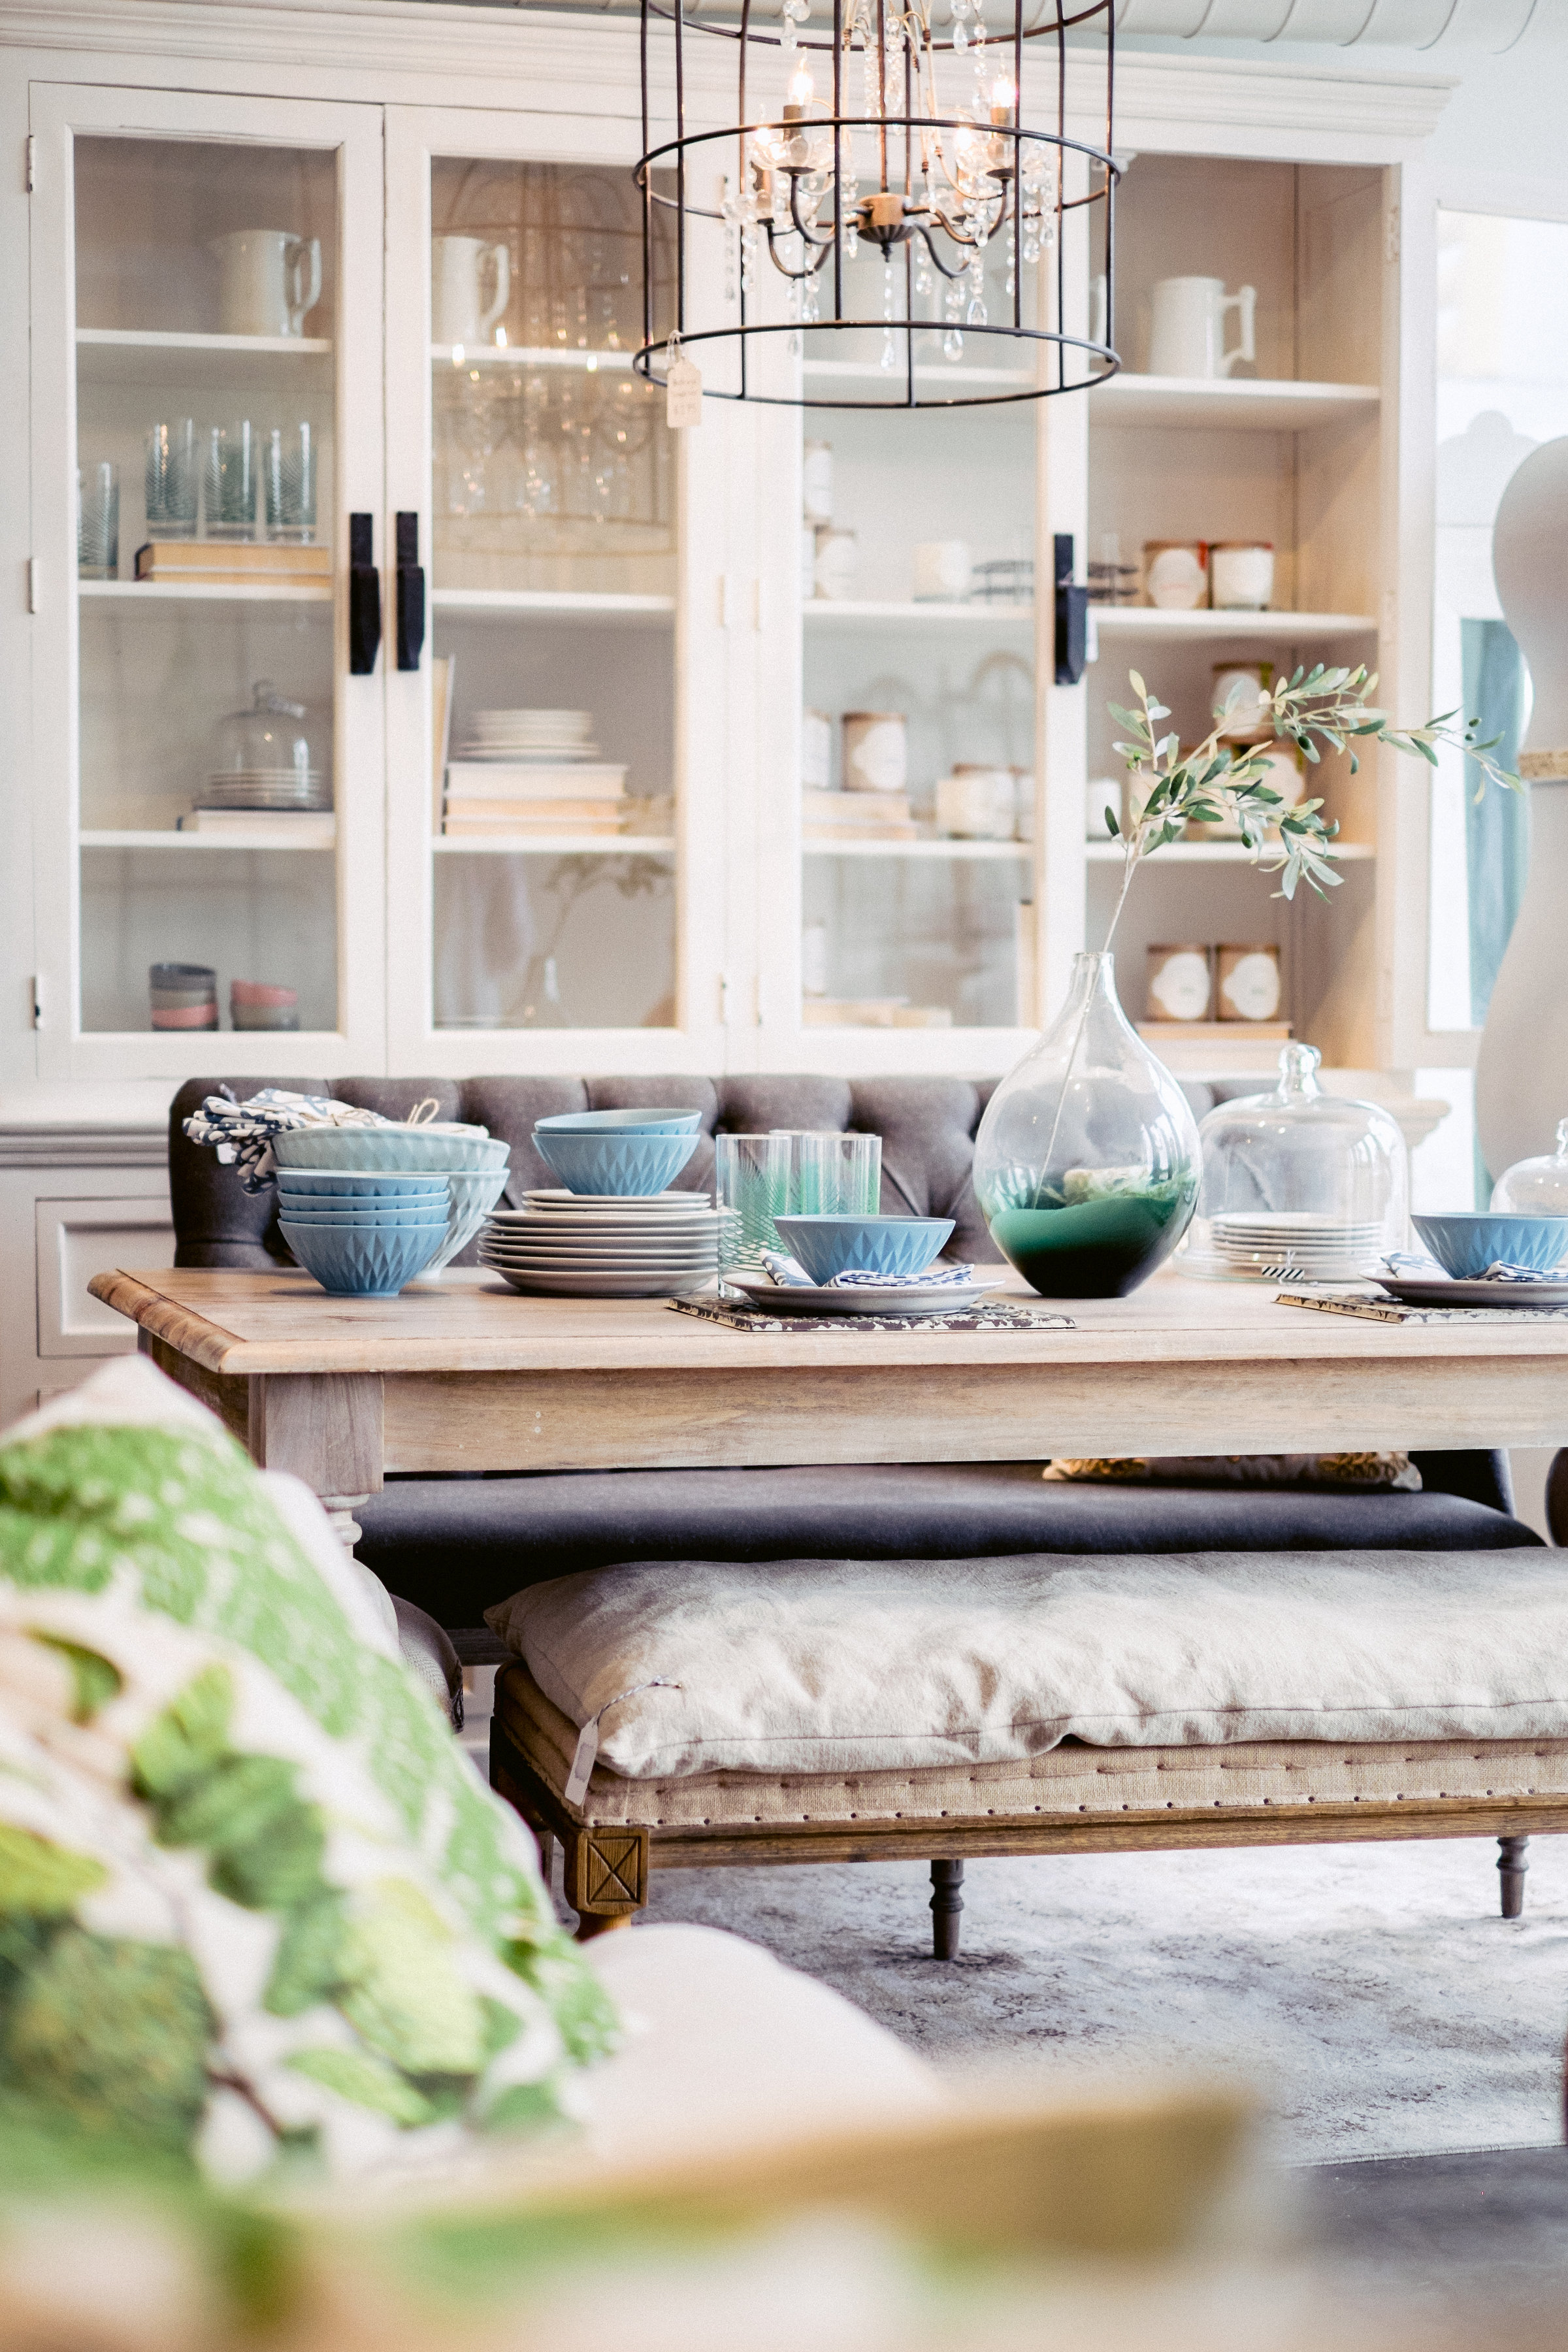 Photo by Vintage Home South